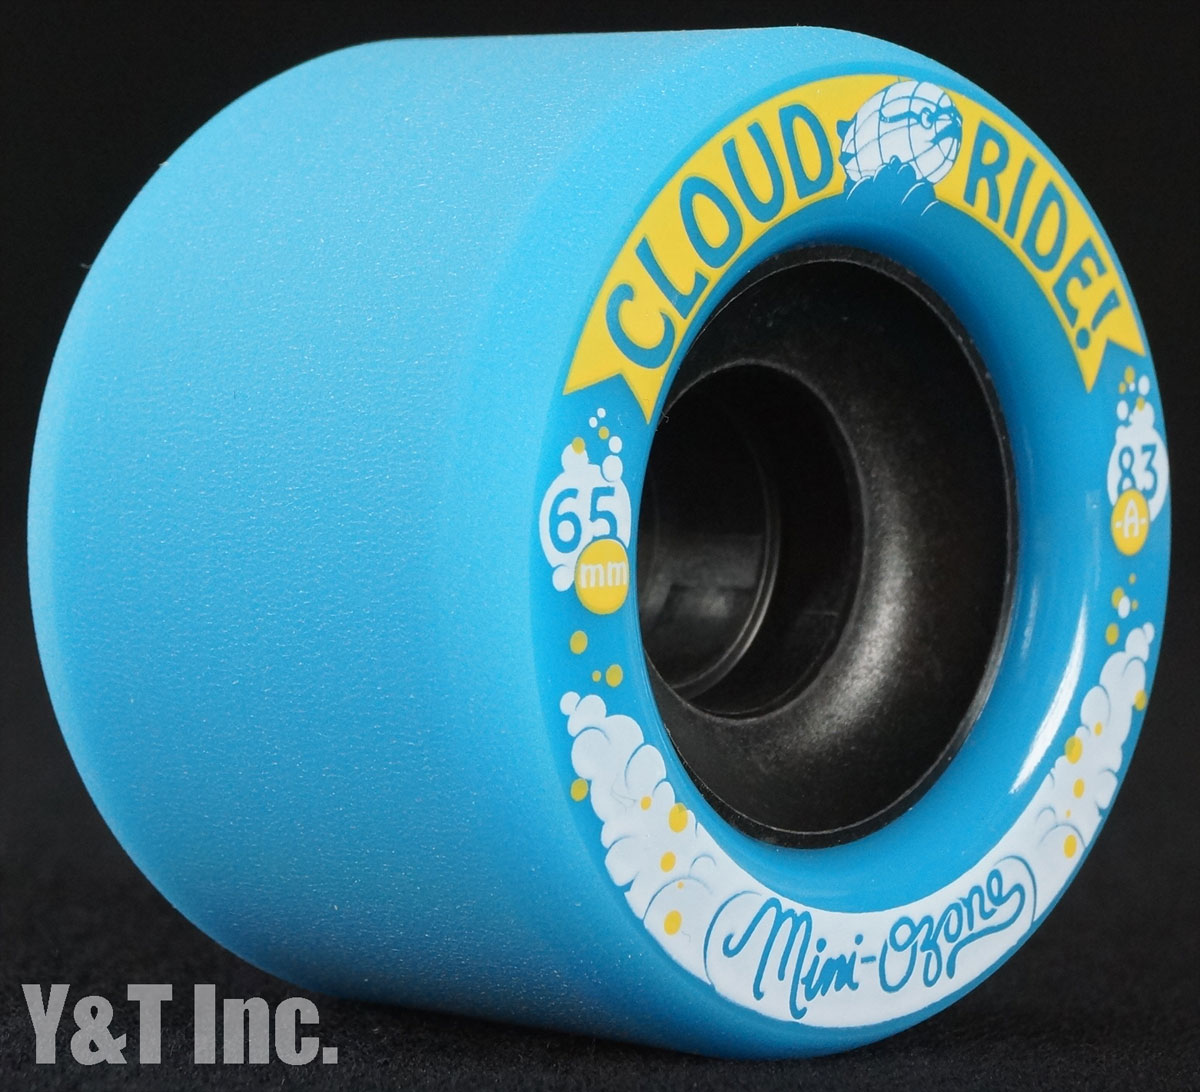 CLOUD RIDE MINI OZONE 65mm 83a 1